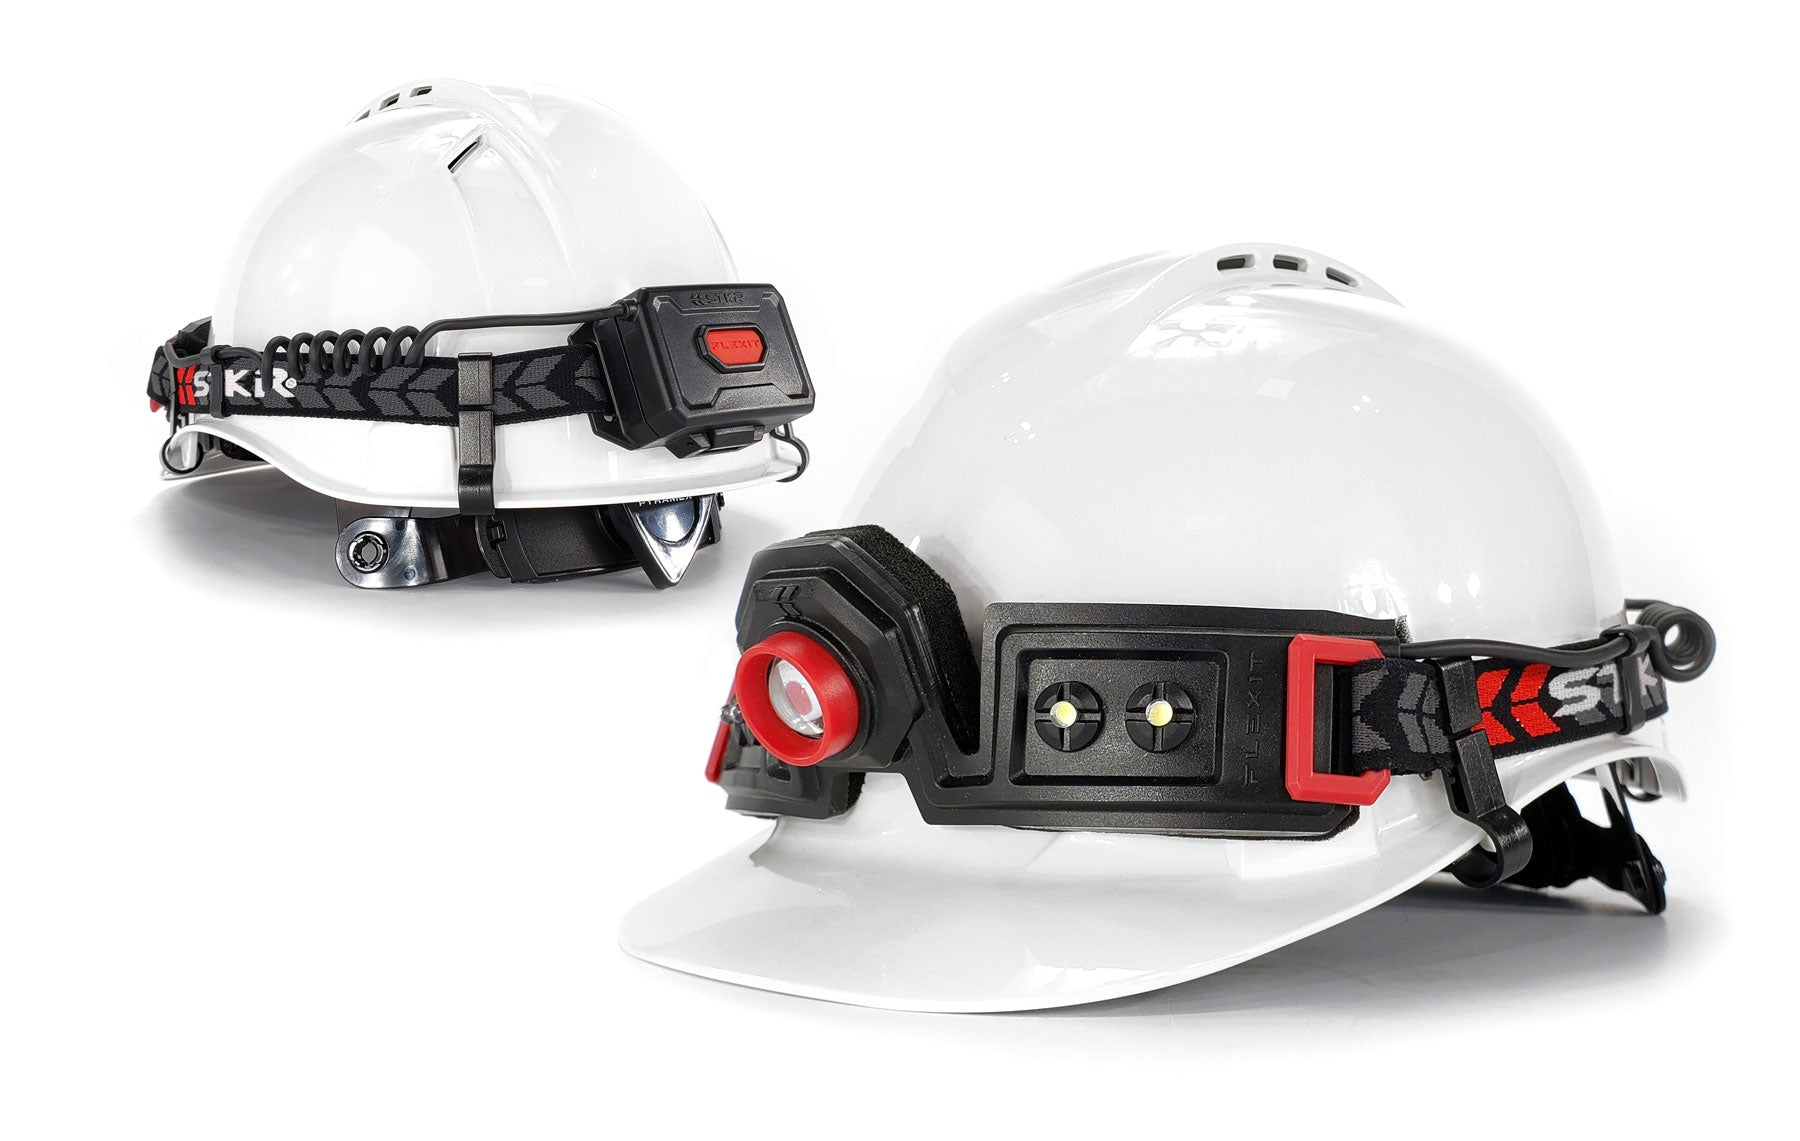 STKR Concepts FLEXIT Headlamp 2.5 hard hat compatible